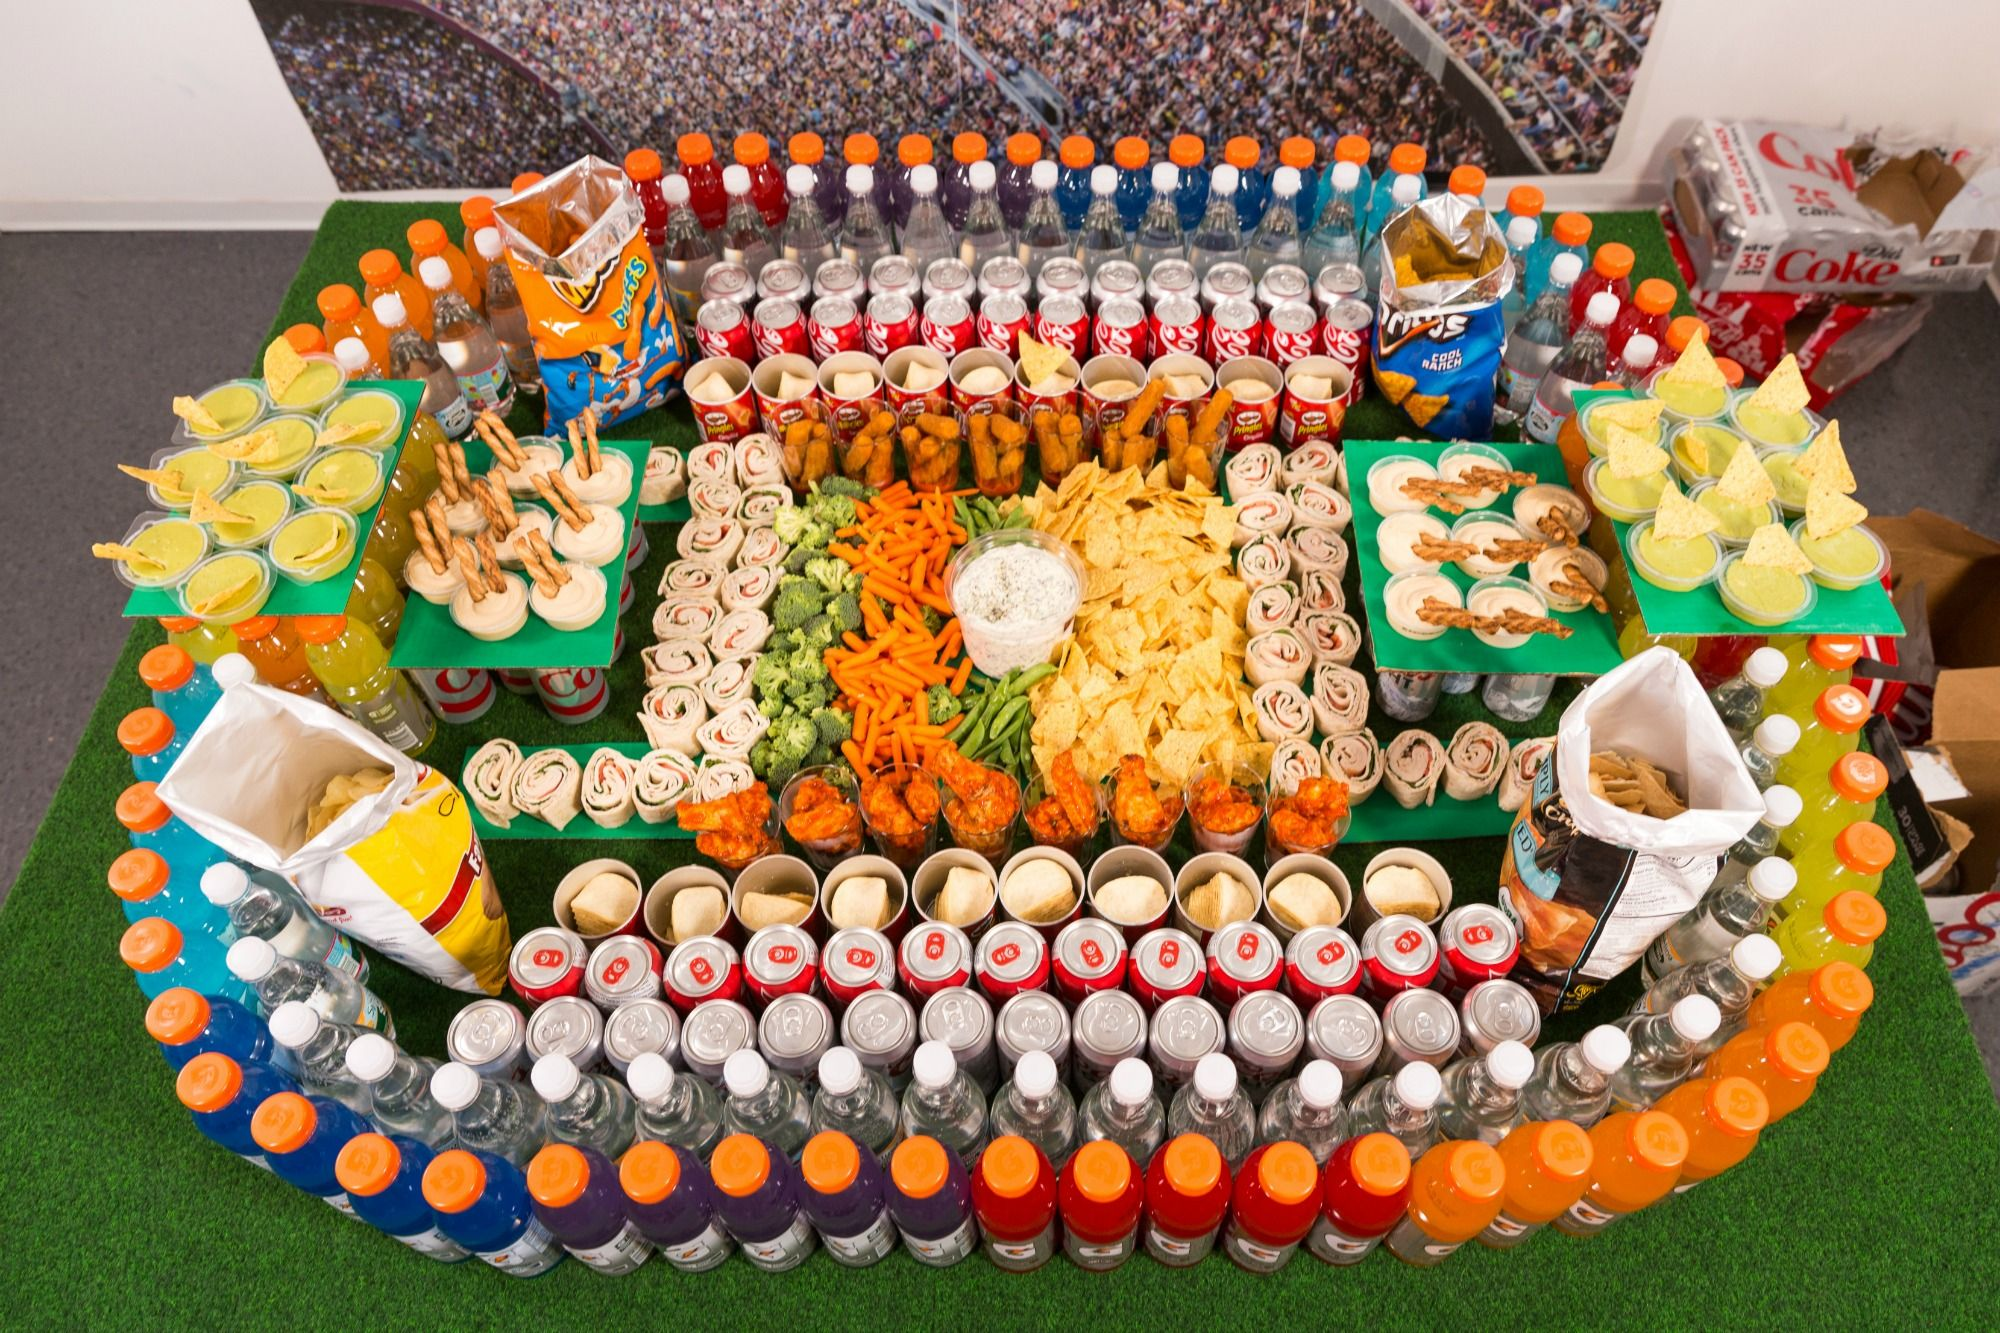 10 Best Super Bowl Snack Stadiums Of All Time How To Make A Football Snack Stadium Delish Com